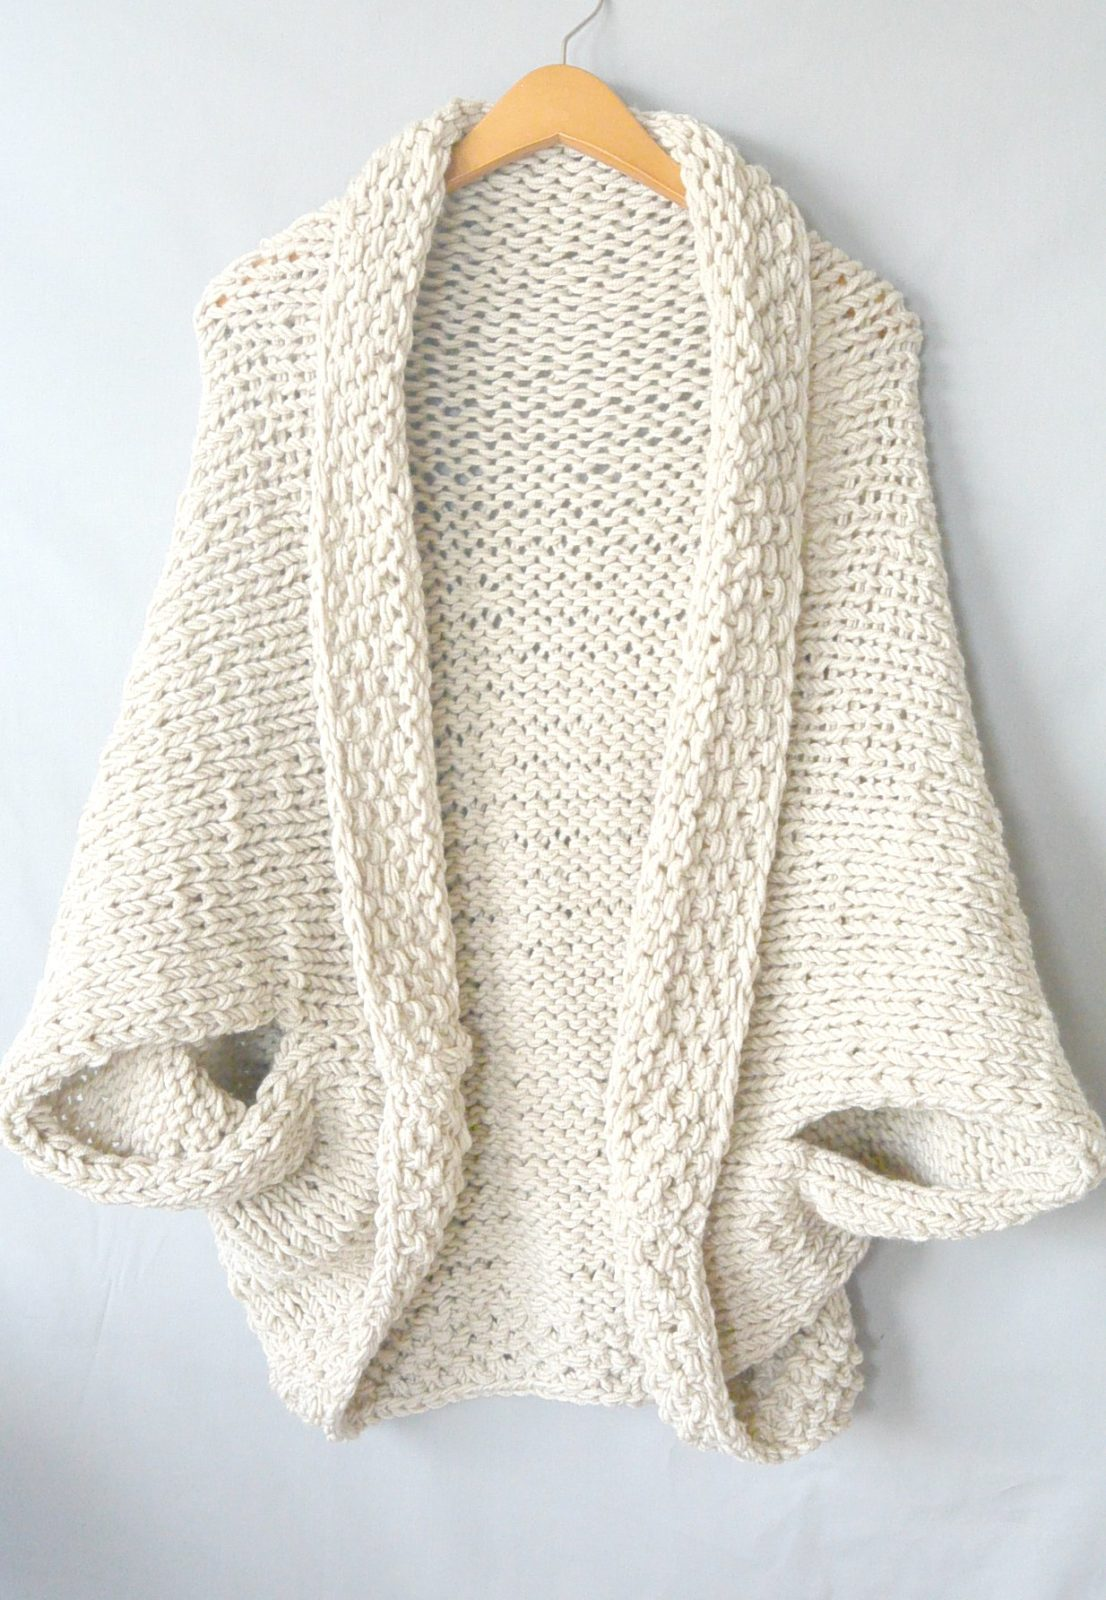 Sweater Knit : Easy knit blanket sweater pattern mama in a stitch